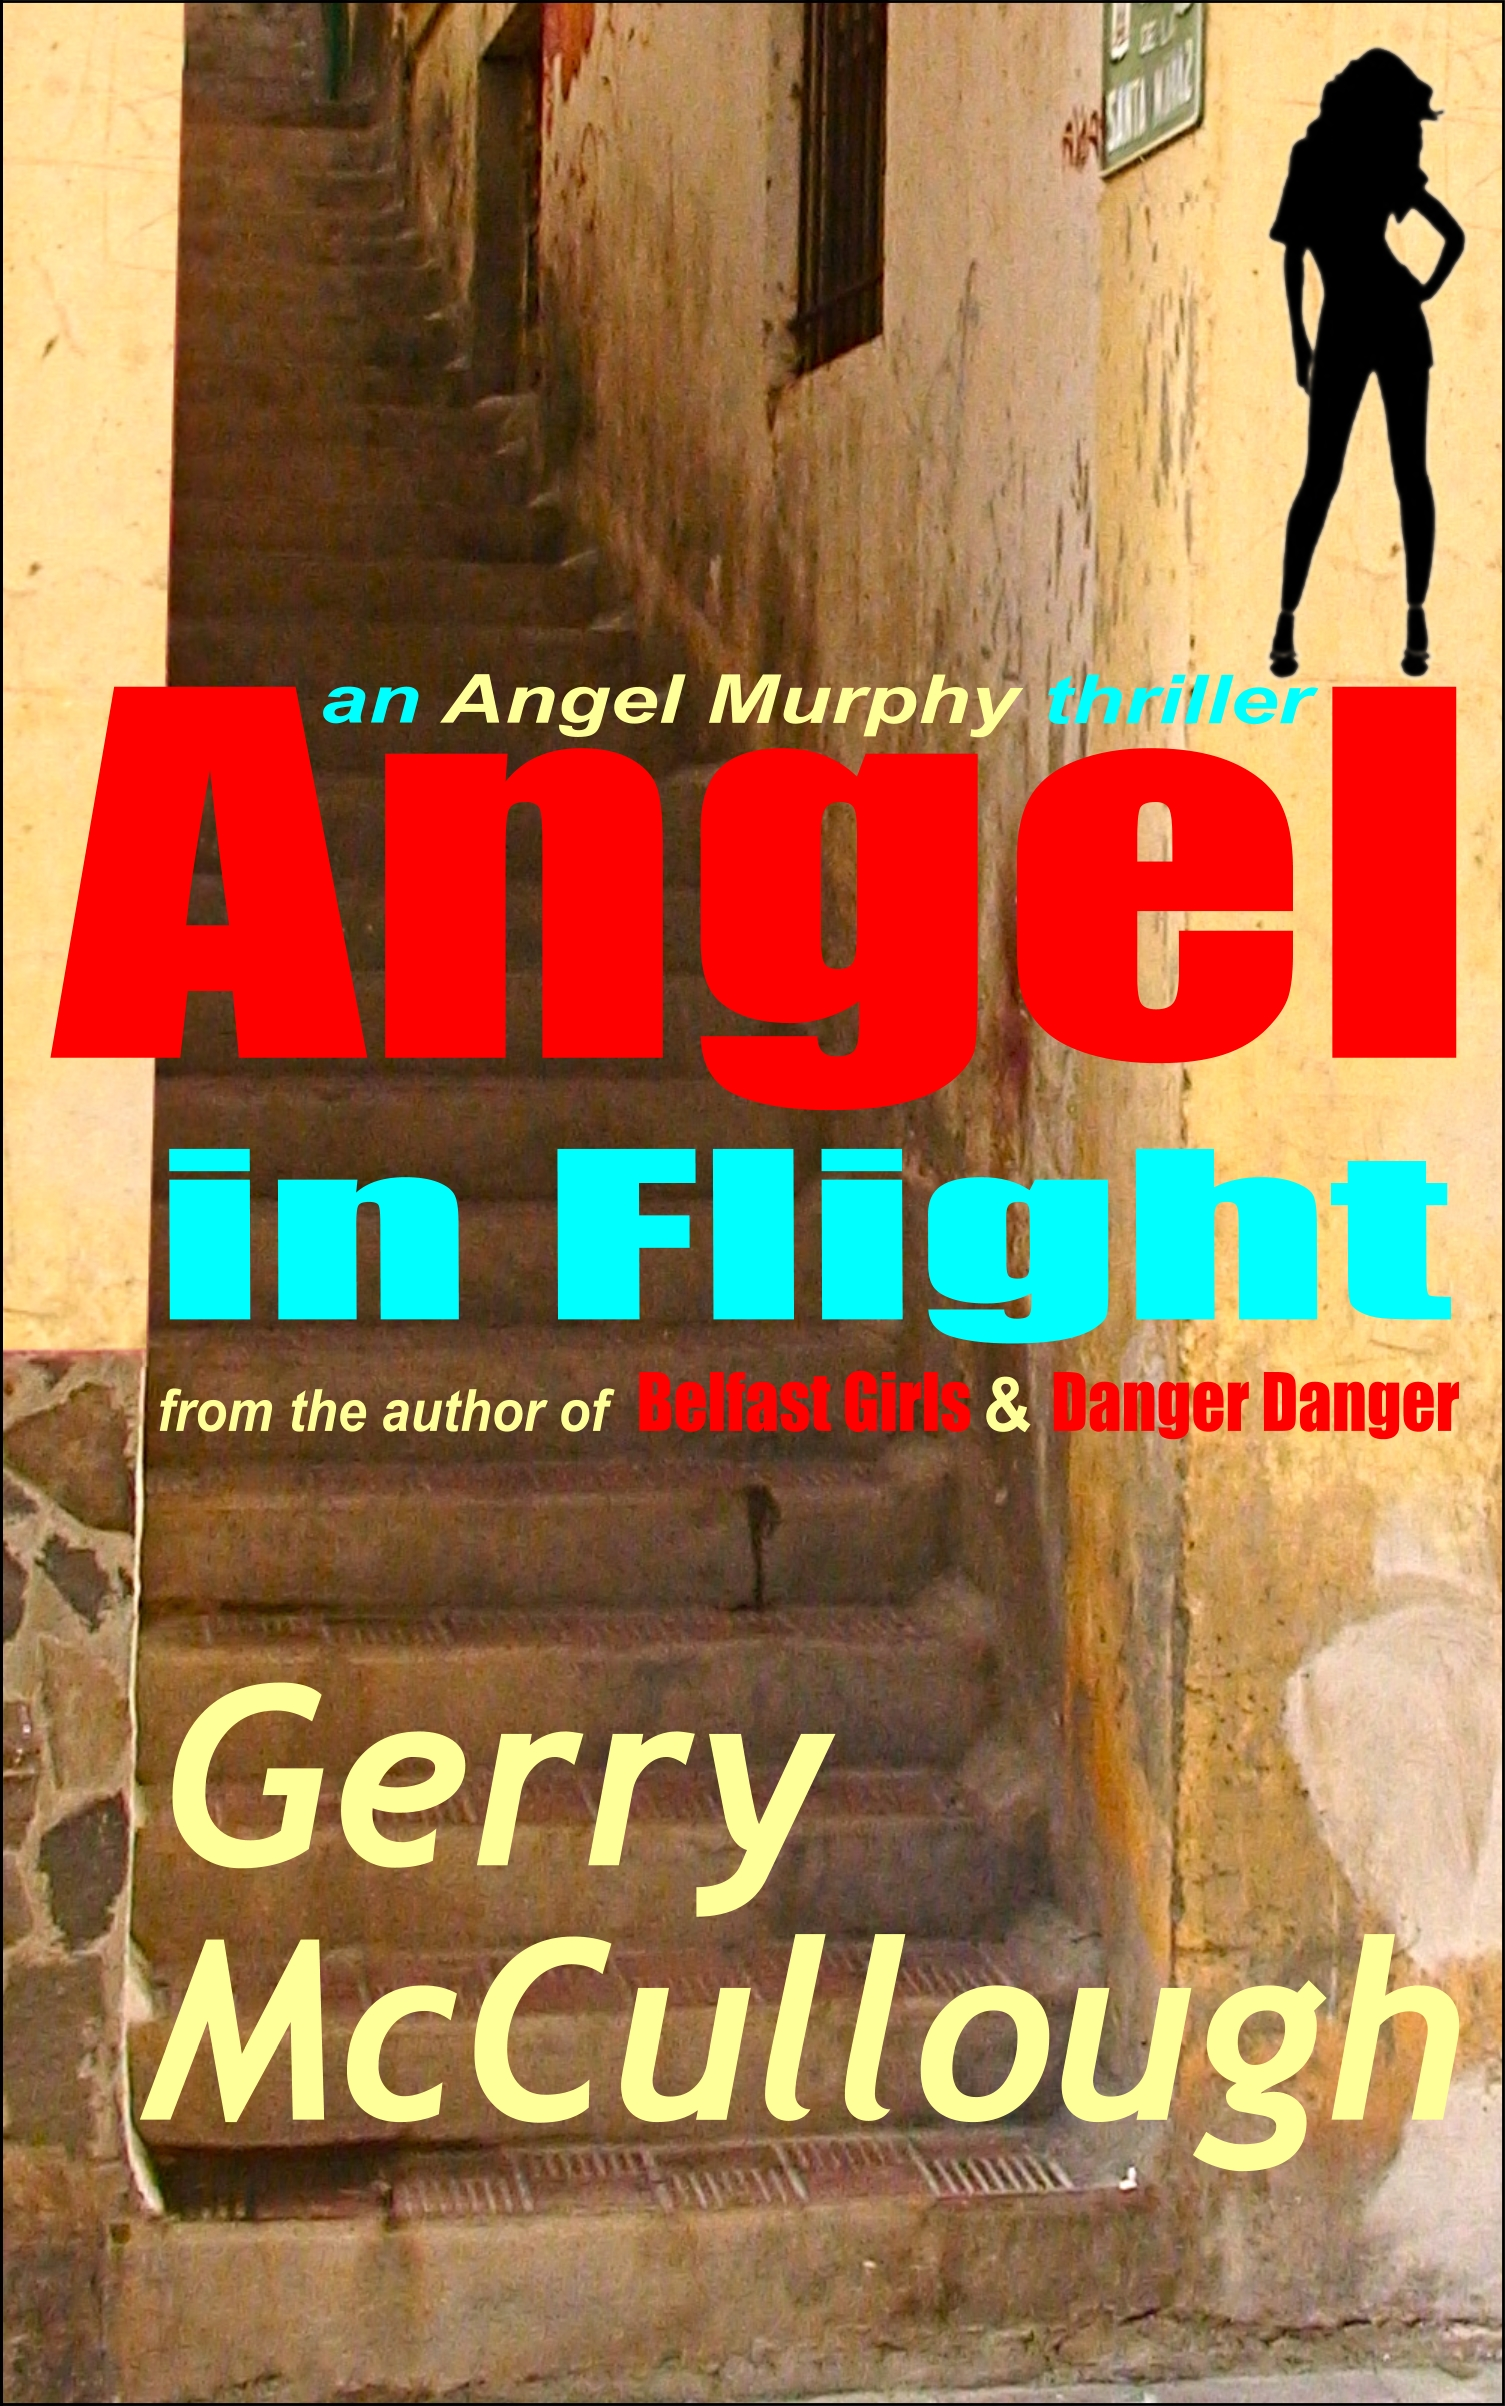 Angel in Flight - more info